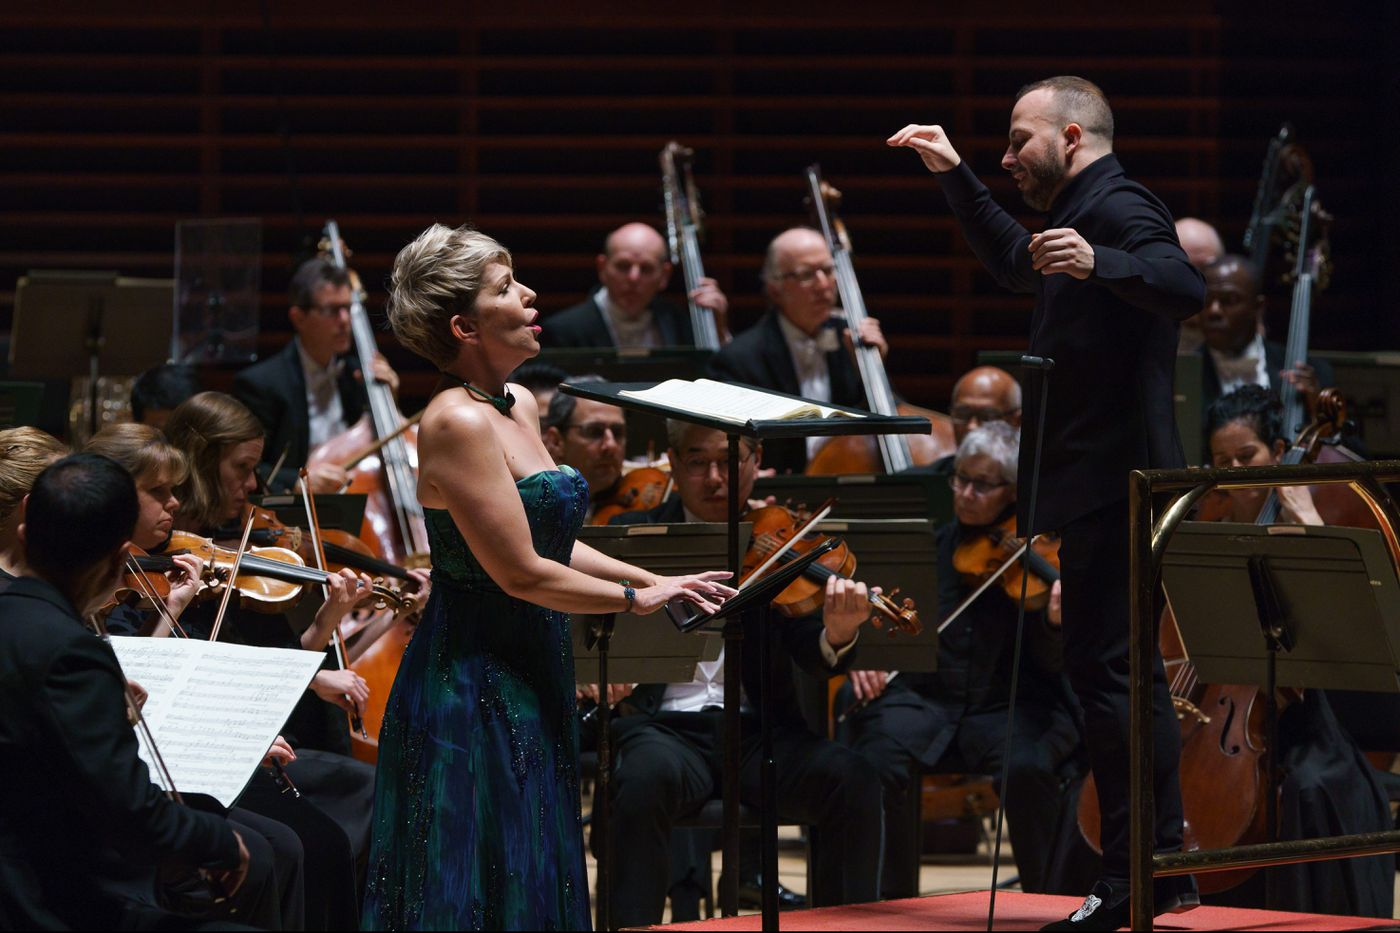 Joyce DiDonato and Yannick Nézet-Séguin pair their star power at Philadelphia Orchestra